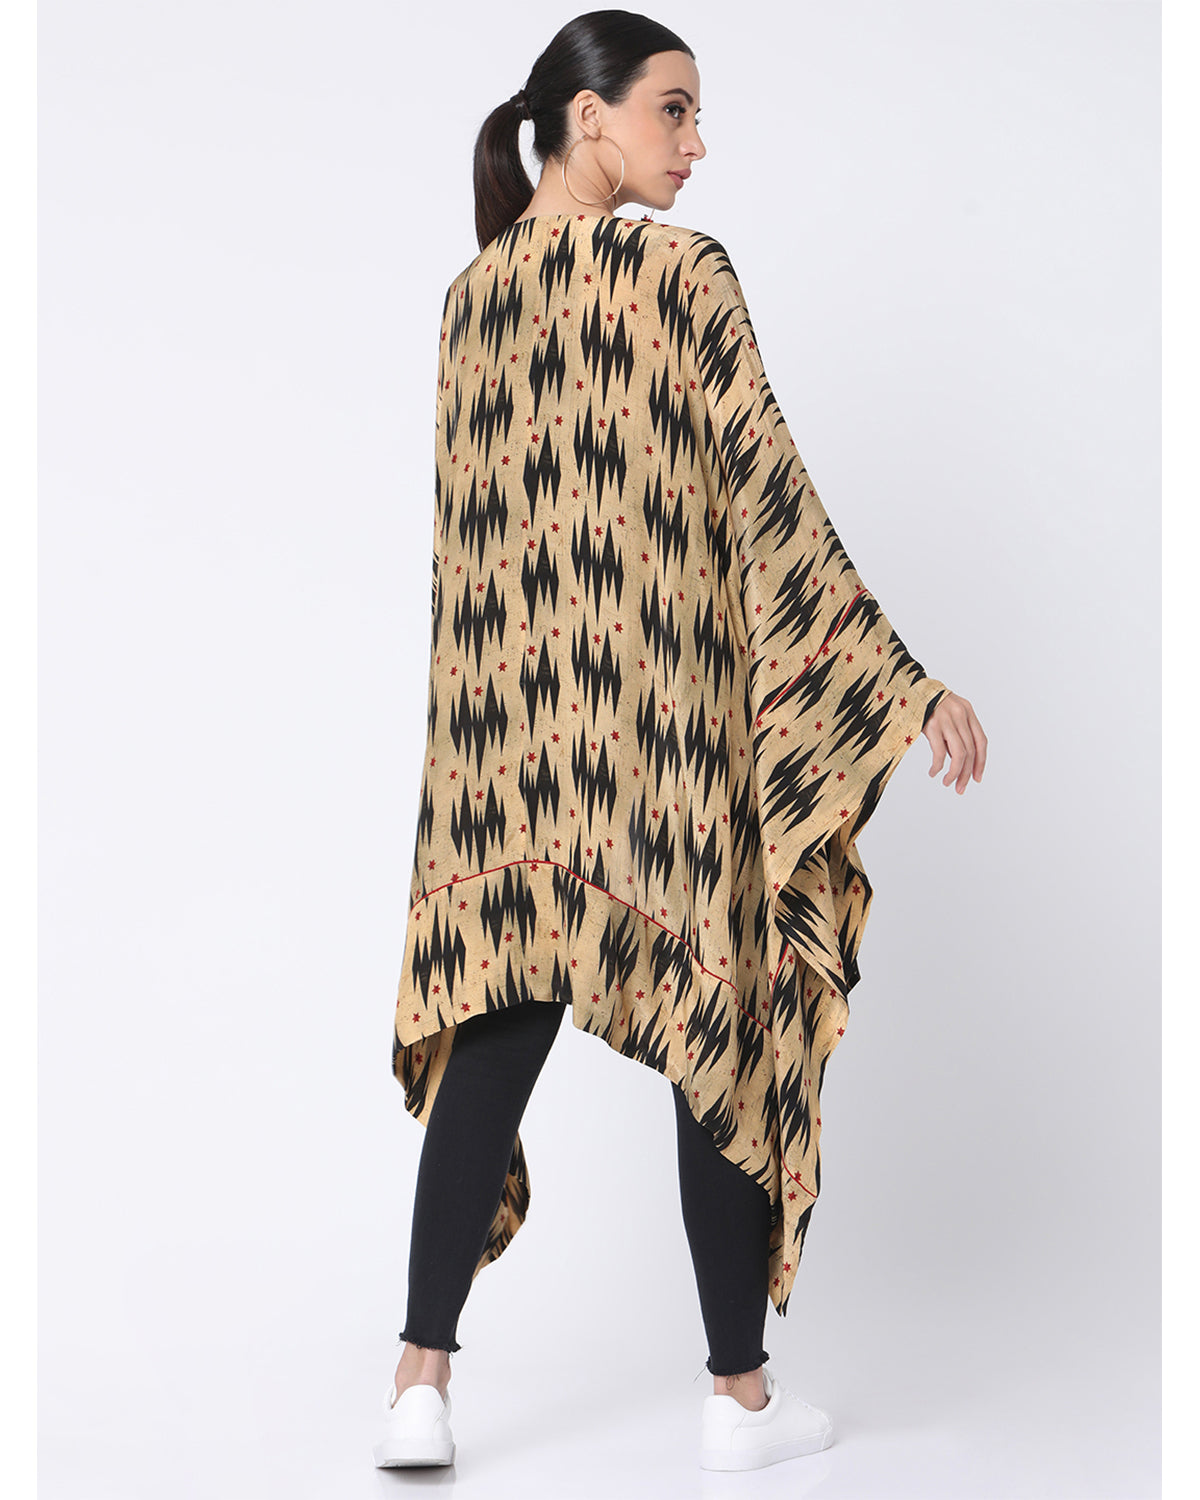 Beige Ikat Star Asymmetrical Short Jacket